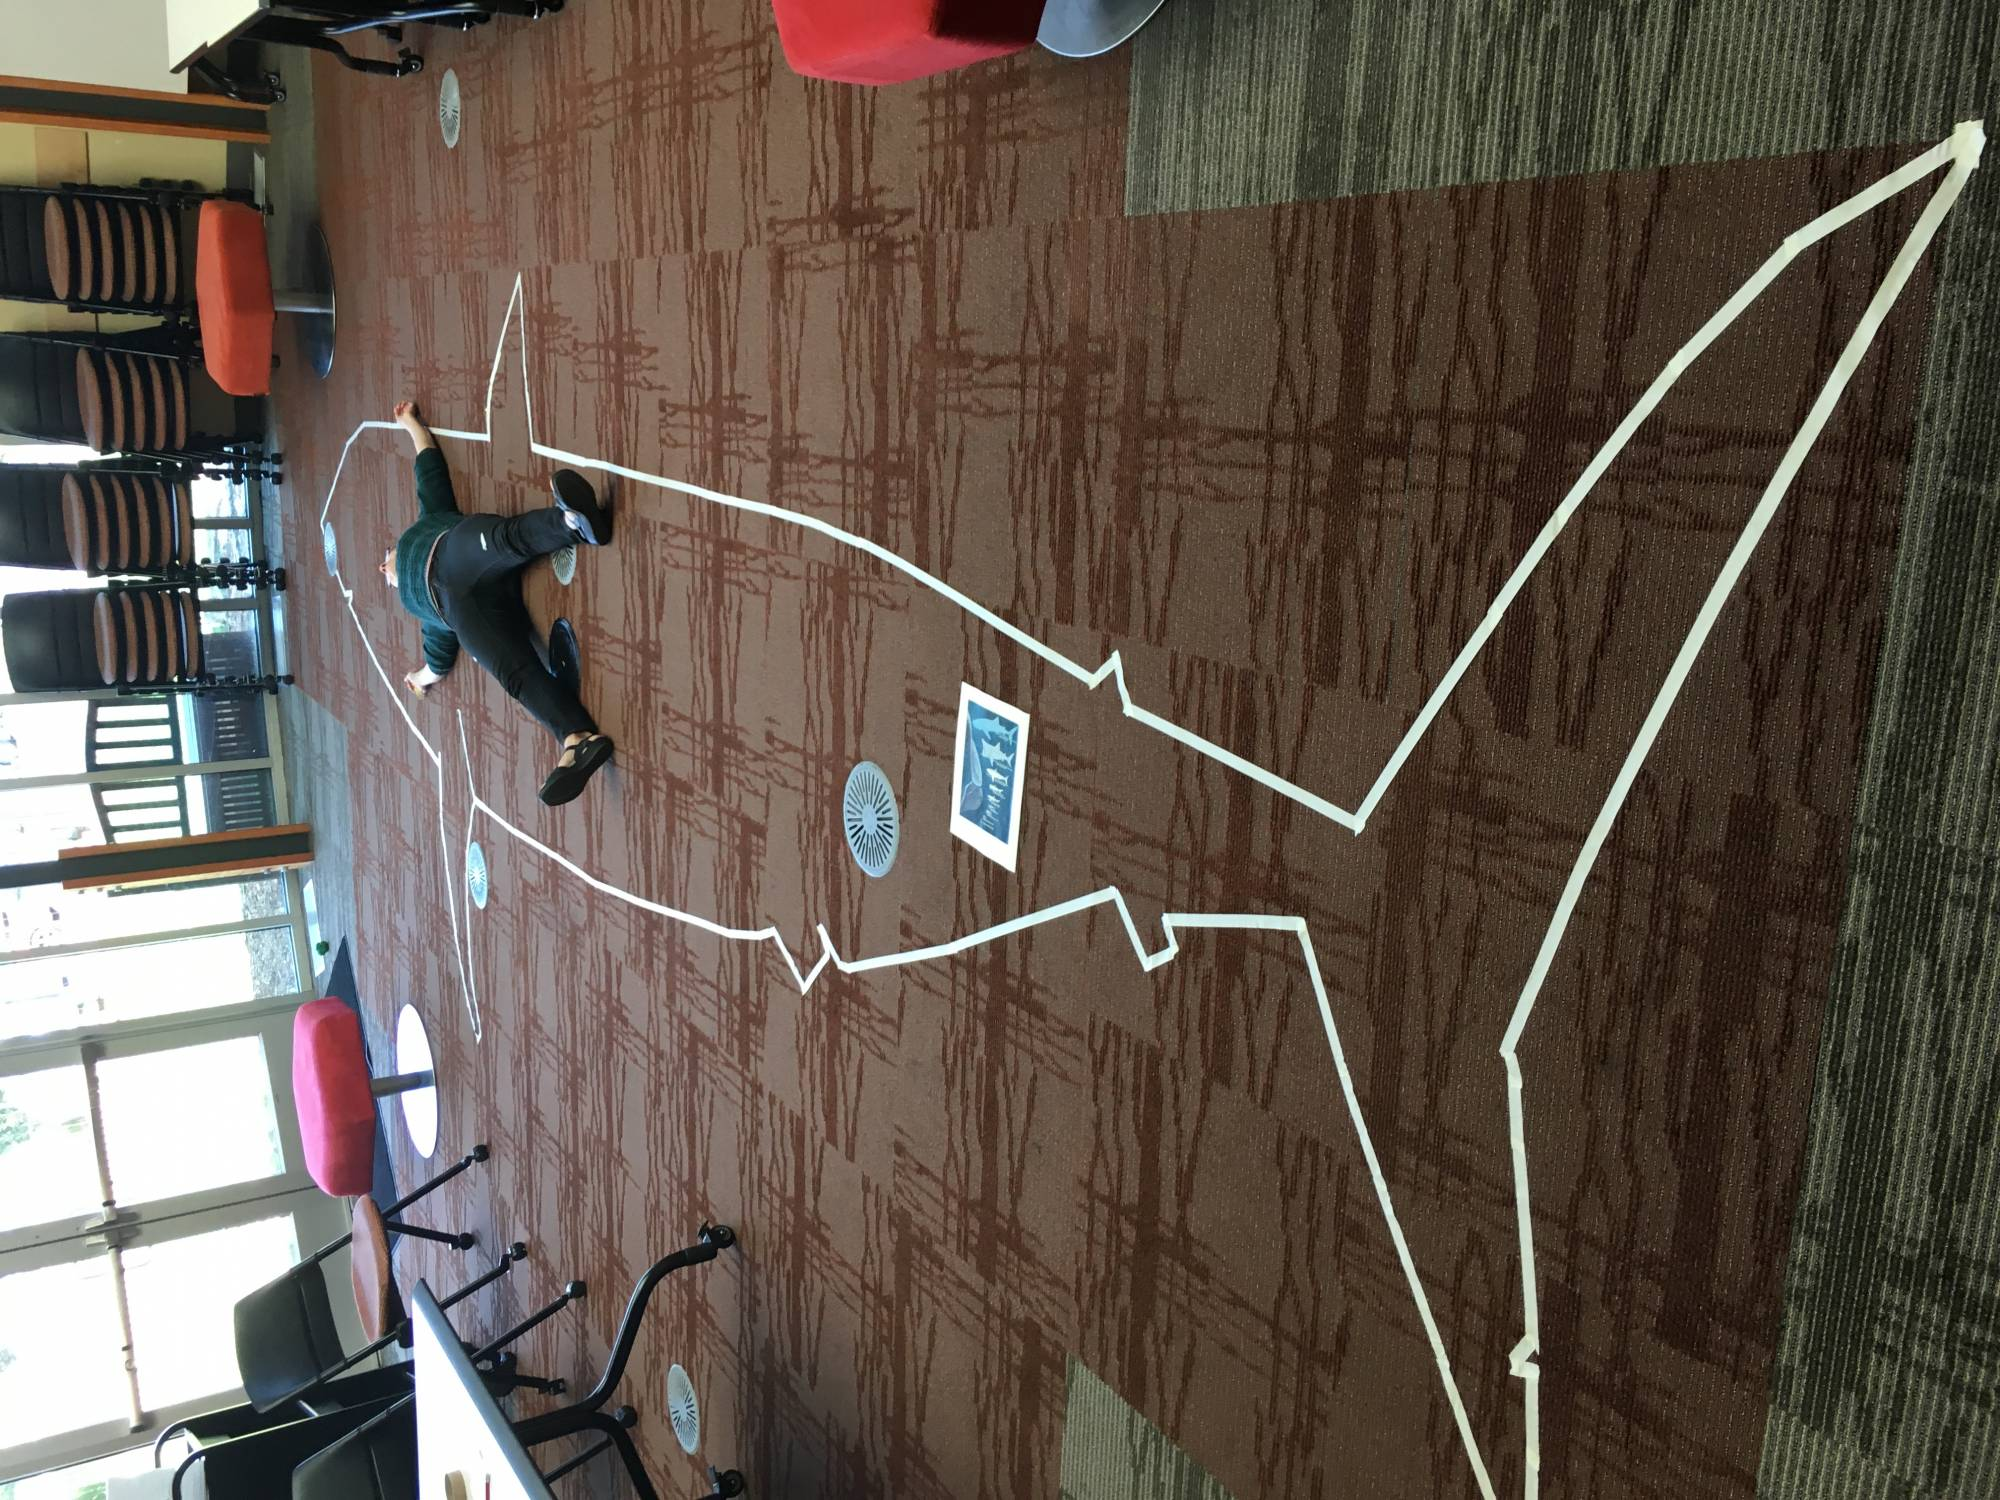 Great White shark outline made of masking tape with an average height human laying inside it.